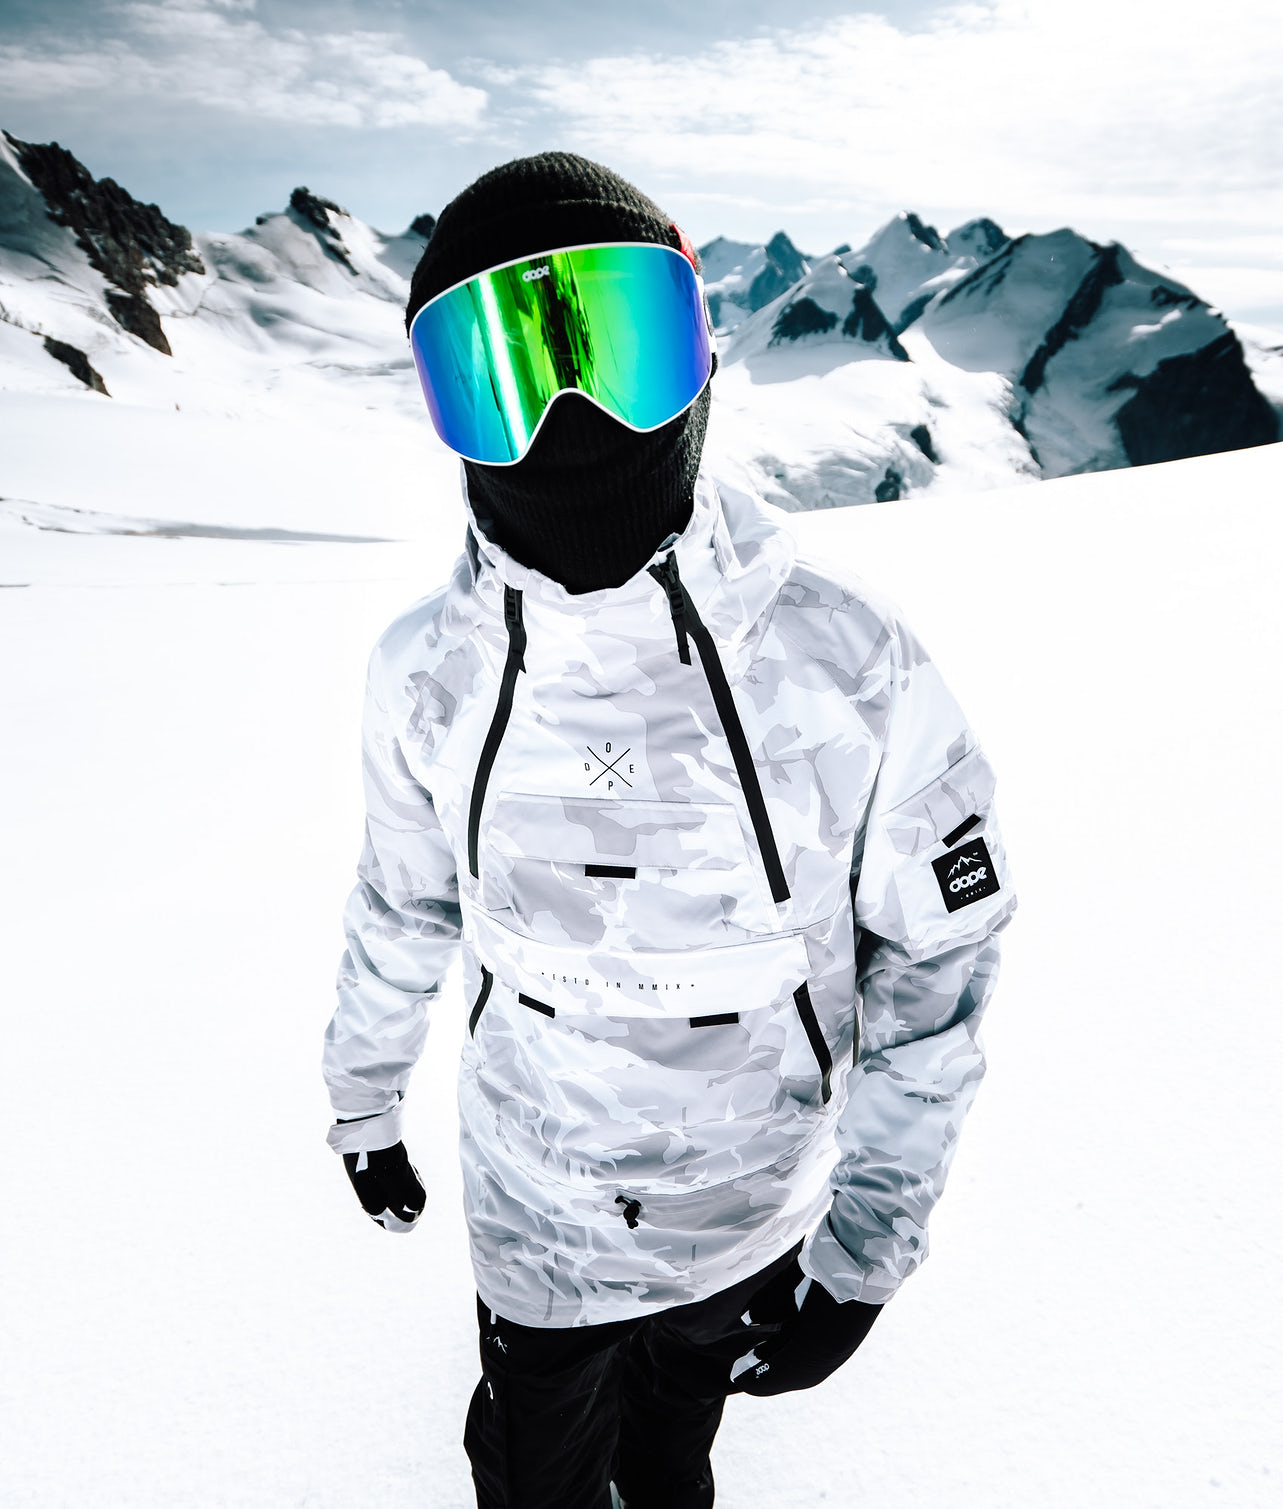 Buy Akin Snowboard Jacket from Dope at Ridestore.com - Always free shipping, free returns and 30 days money back guarantee